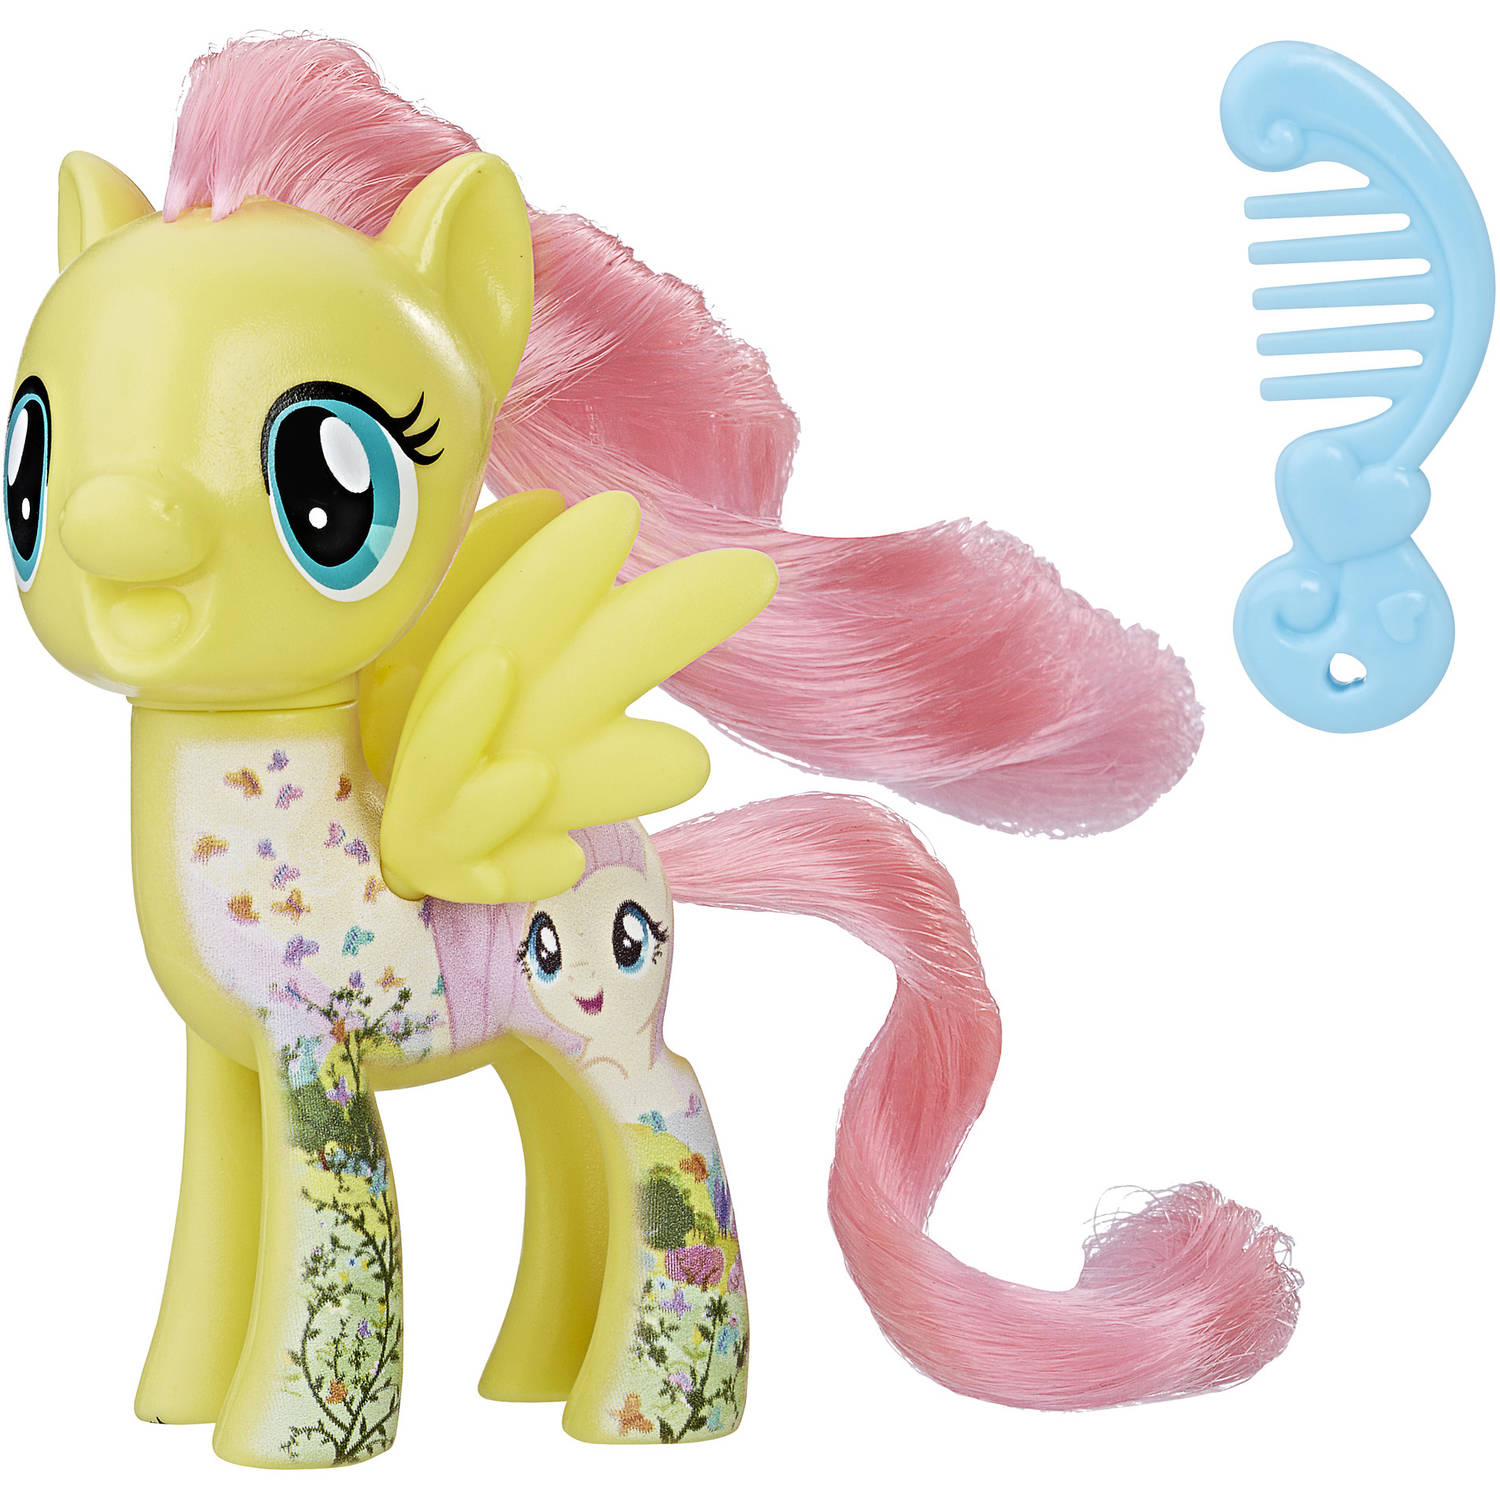 My Little Pony Friends All About Fluttershy by Hasbro